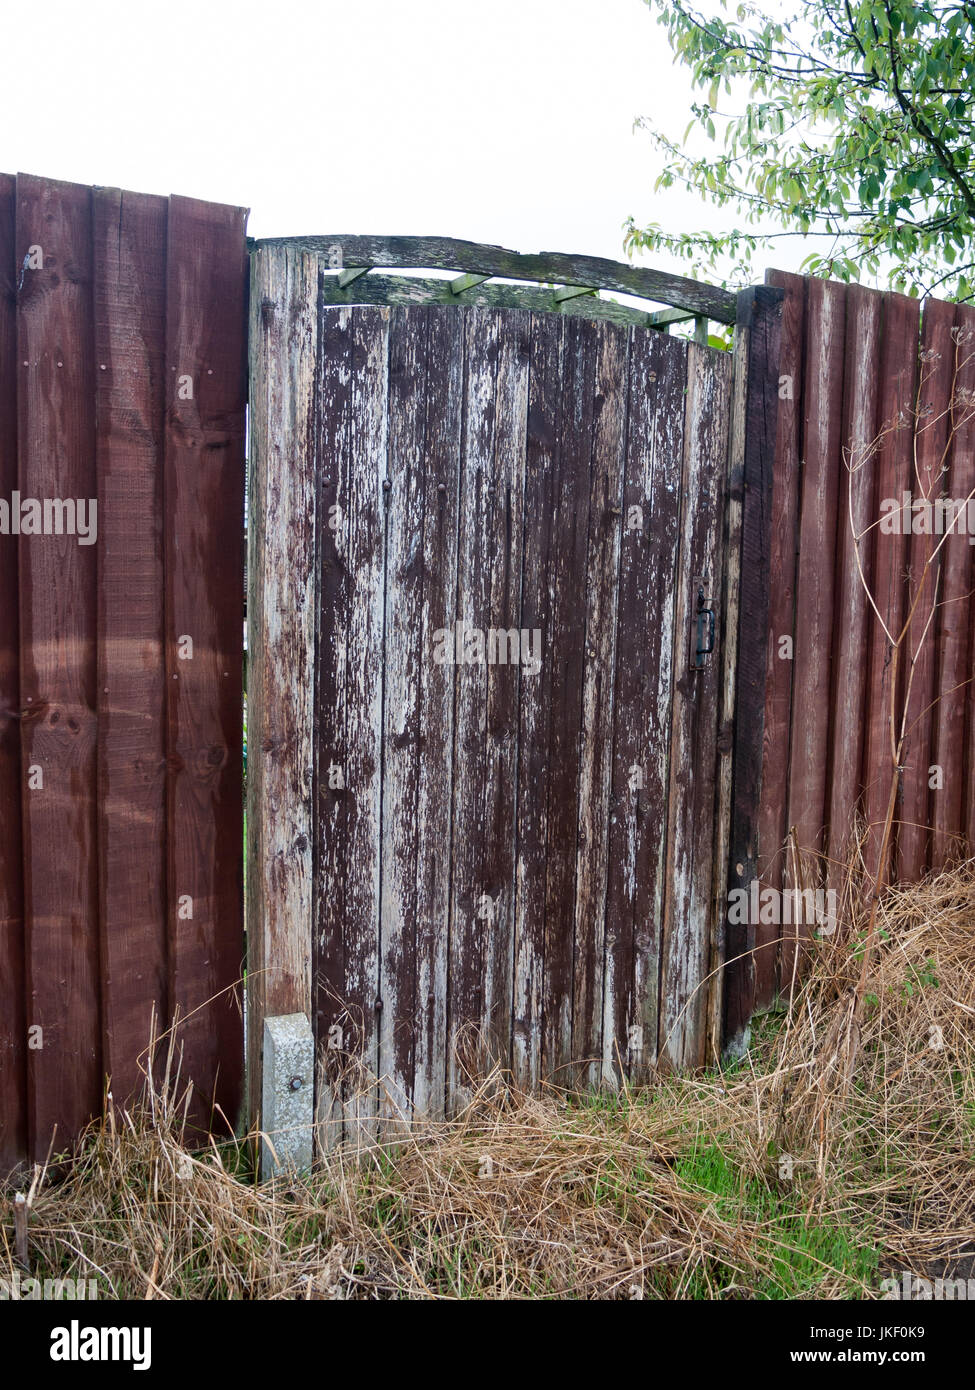 Hedge Wooden Fence Fencing Stockfotos & Hedge Wooden Fence Fencing